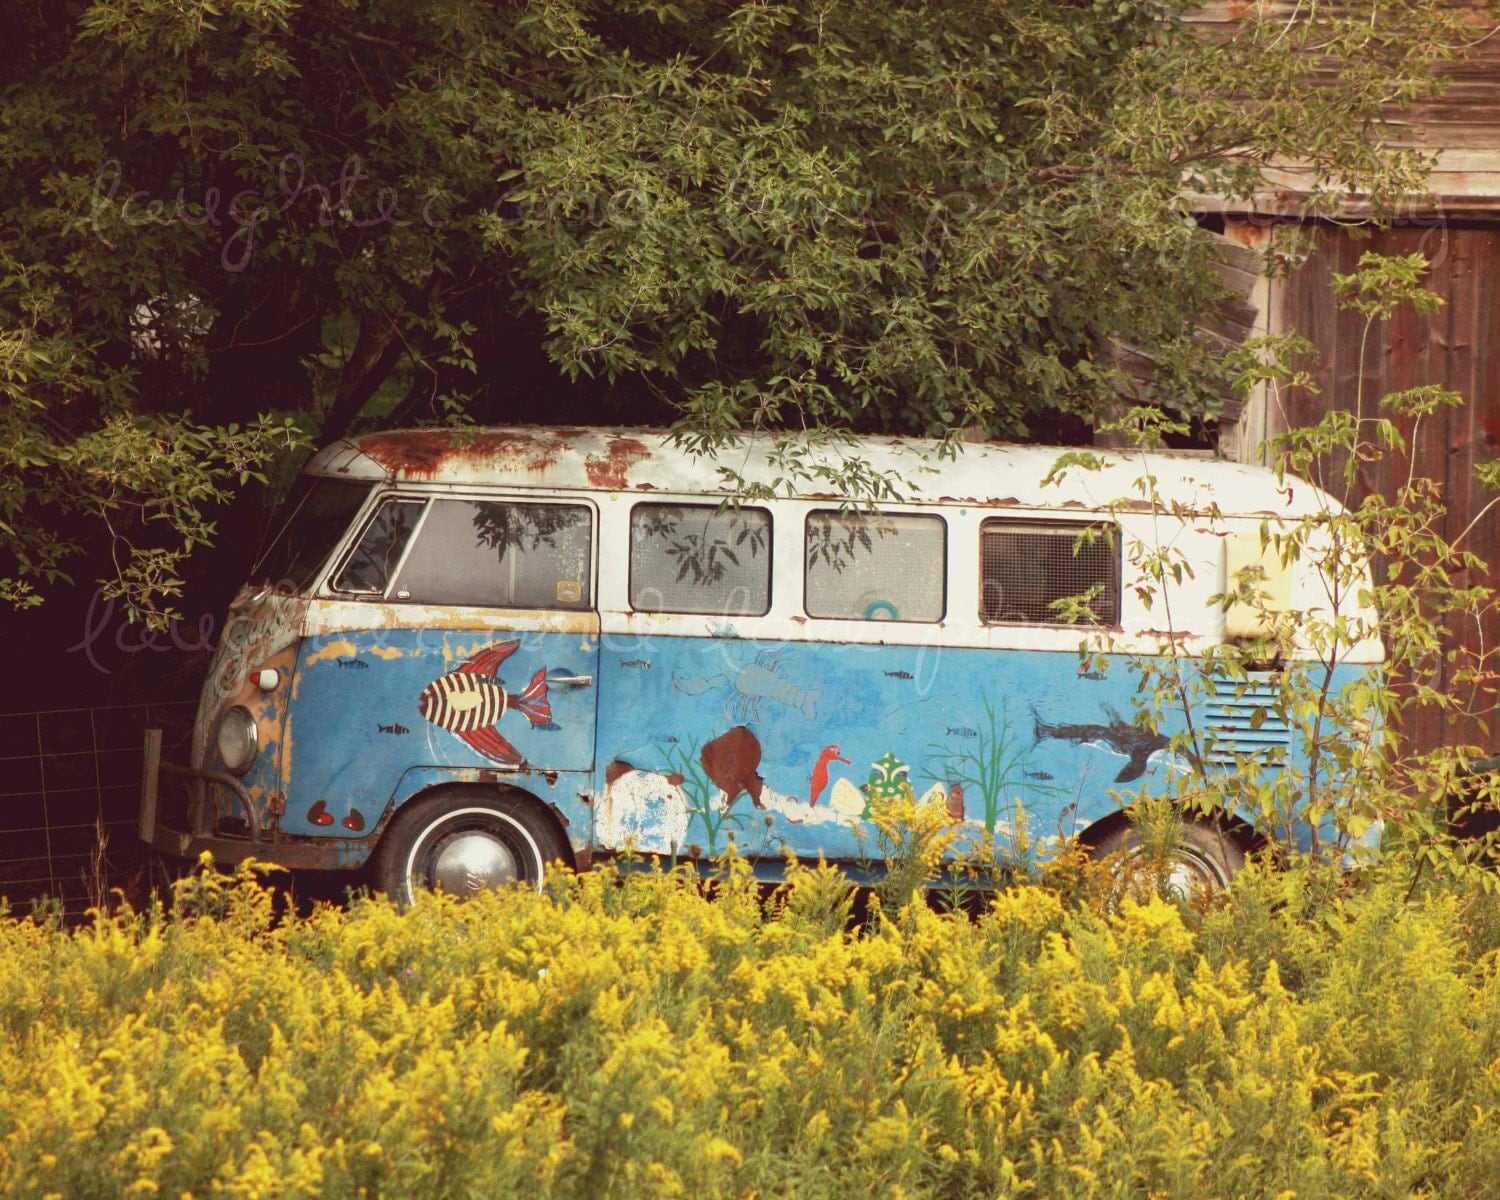 hippie bus photo vintage volkswagon photography retro. Black Bedroom Furniture Sets. Home Design Ideas